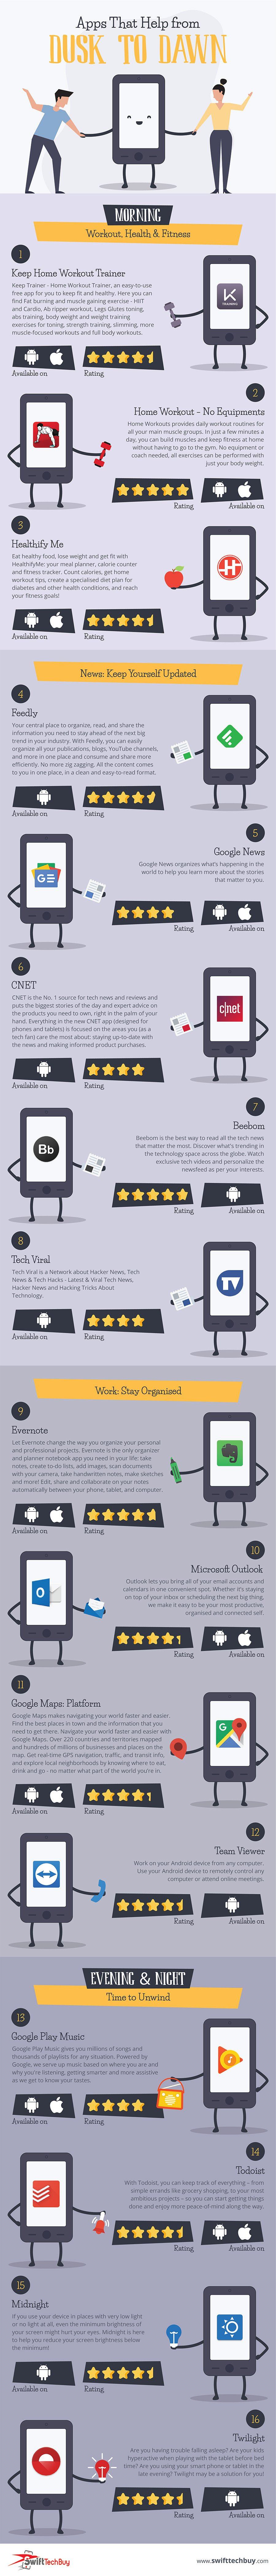 Mobile Phone Apps That Help From Dusk To Dawn [INFOGRAPHIC]